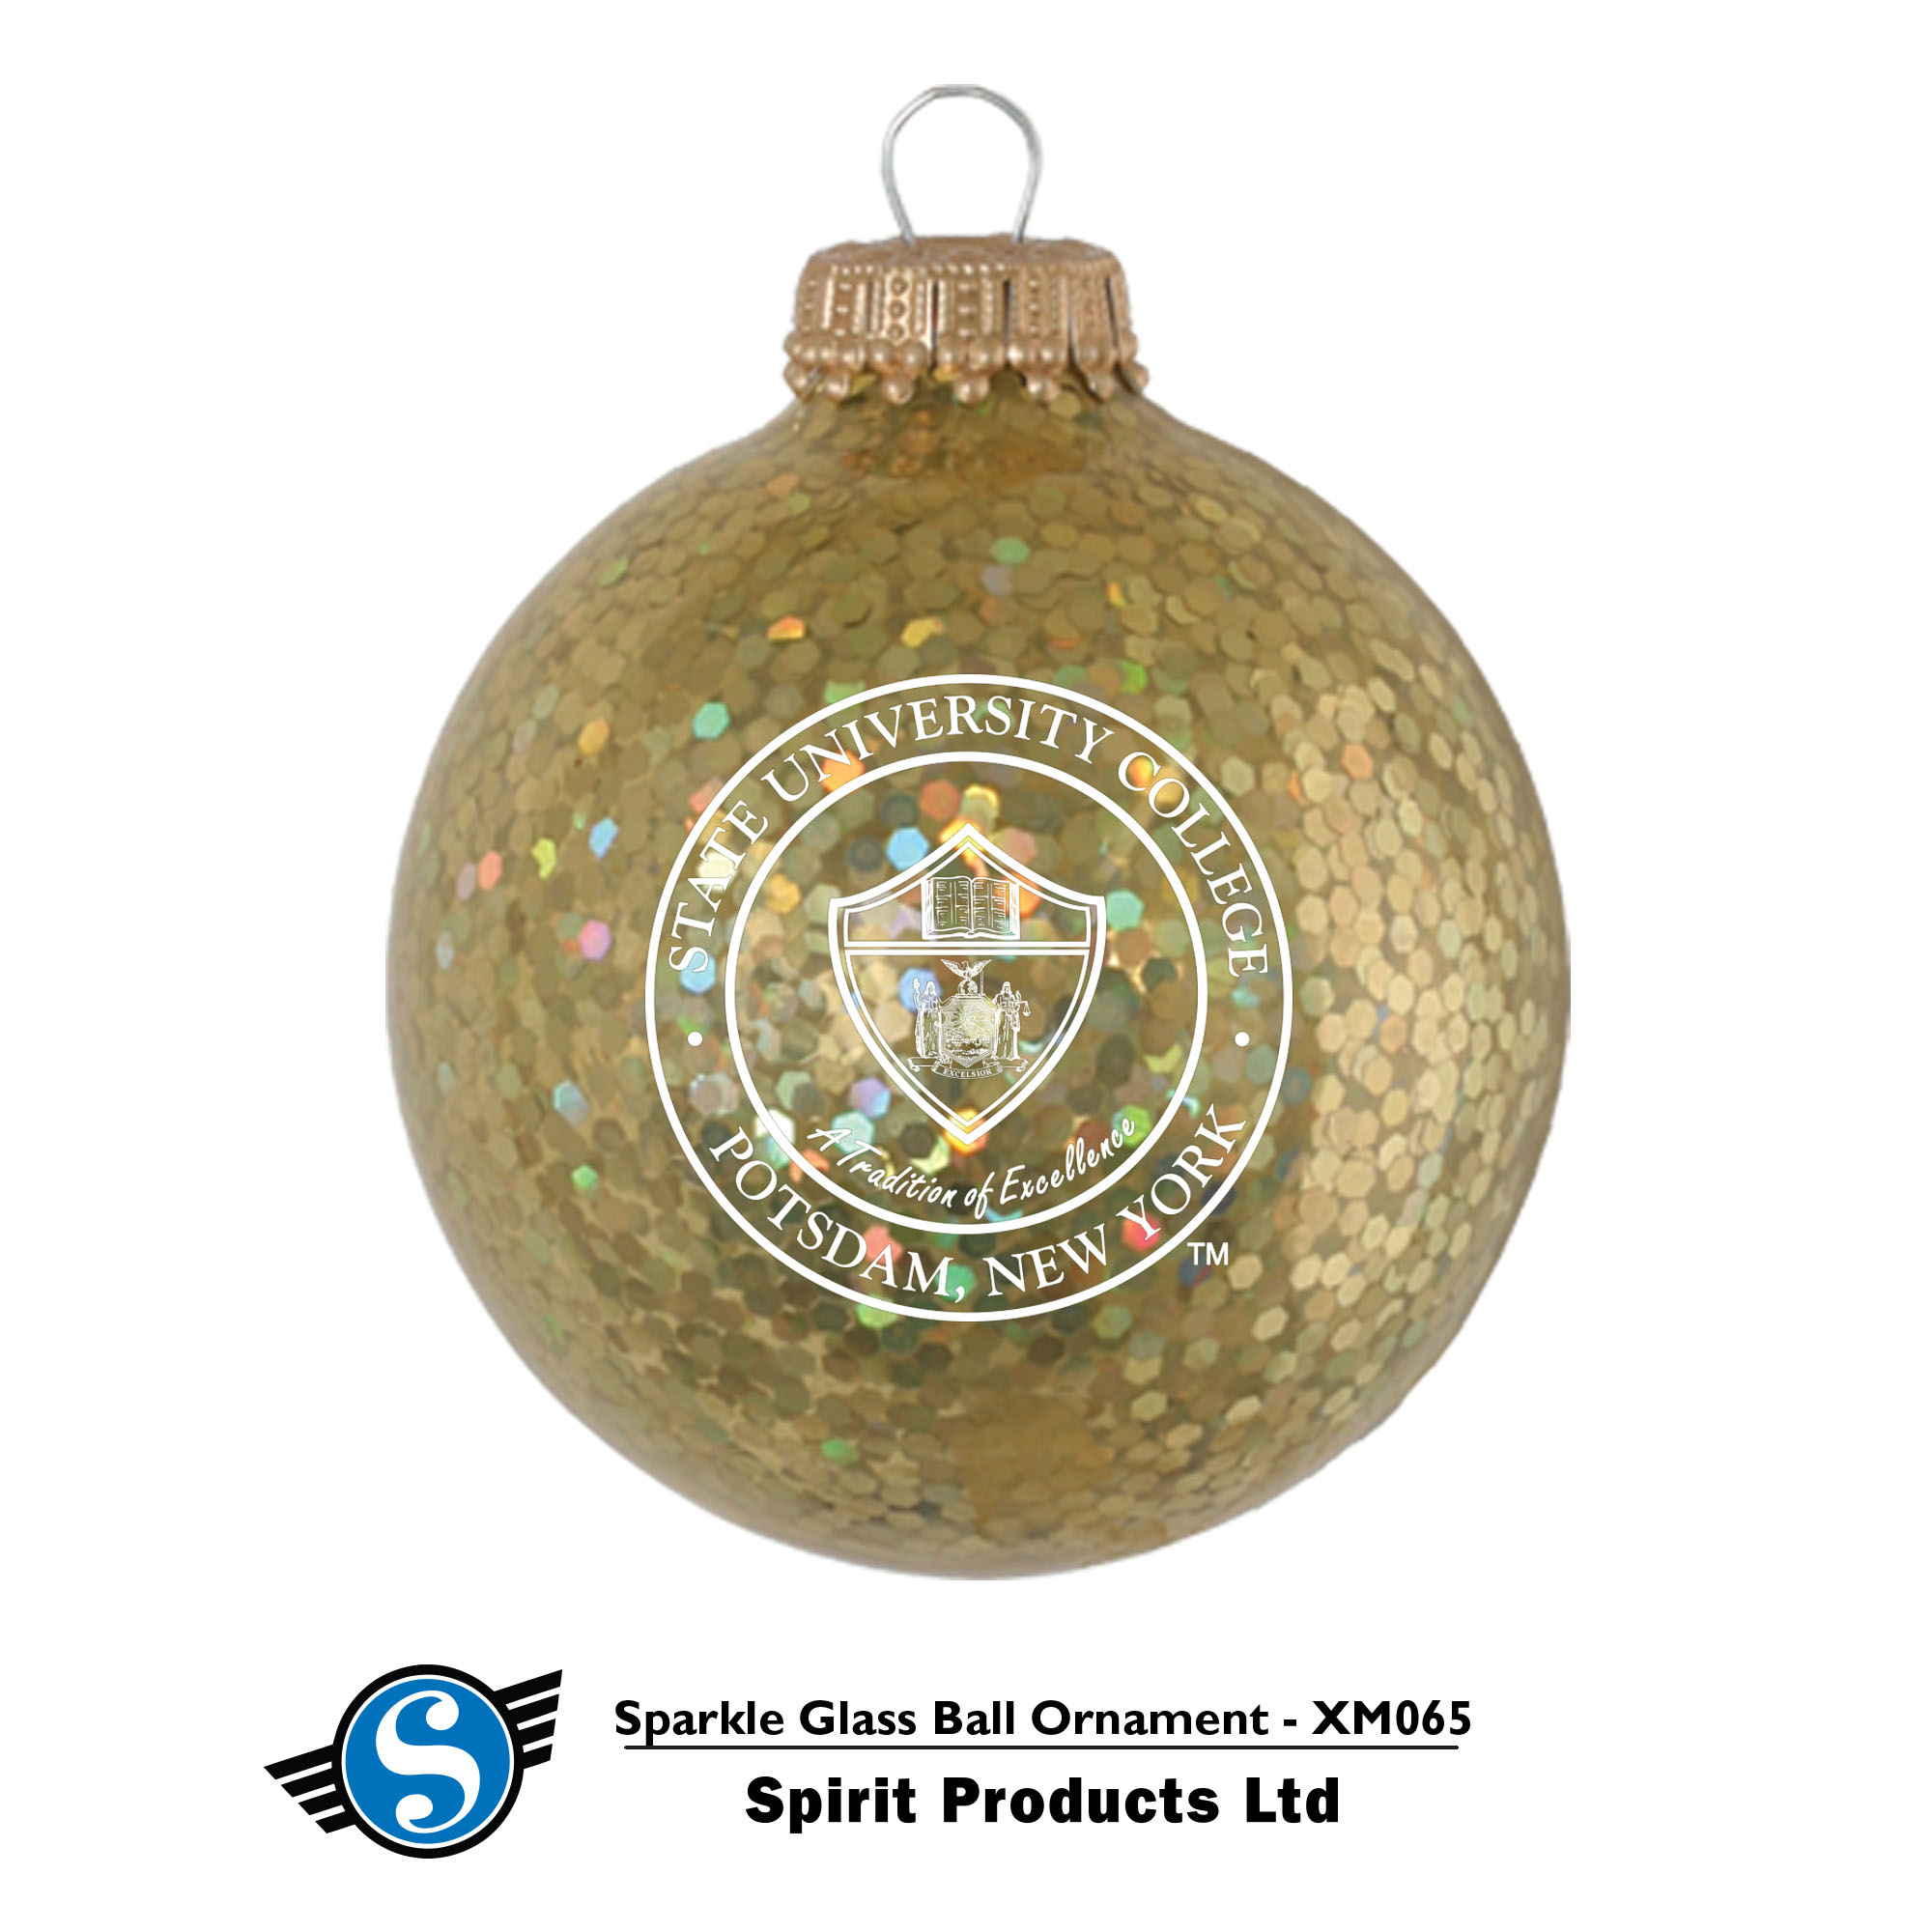 GLASS BALL SPARKLE ORNAMENT WITH SEAL